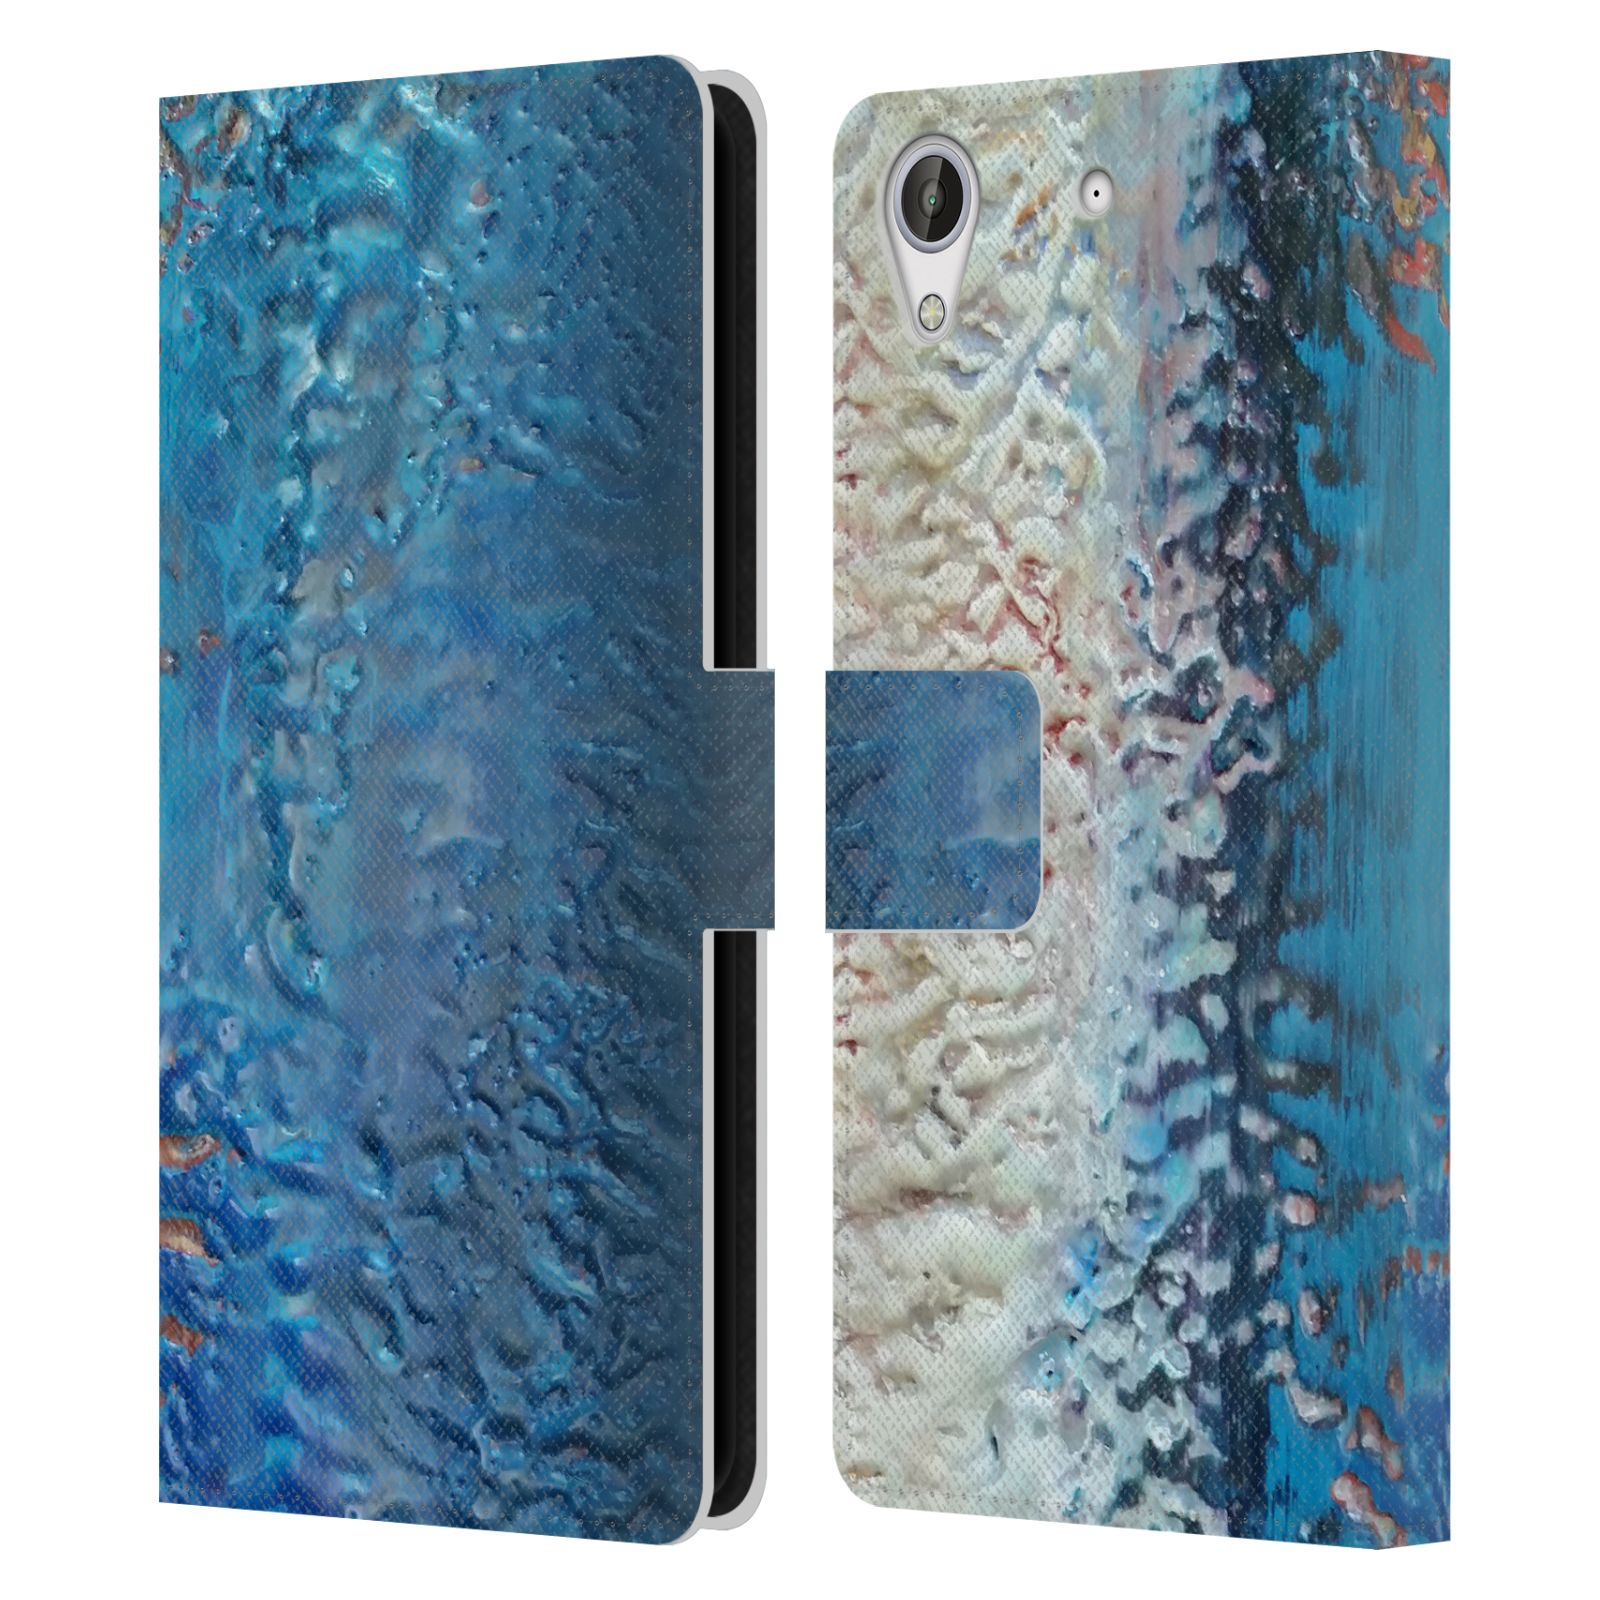 OFFICIAL-BRENDA-ERICKSON-ARTS-LEATHER-BOOK-WALLET-CASE-FOR-HTC-PHONES-2